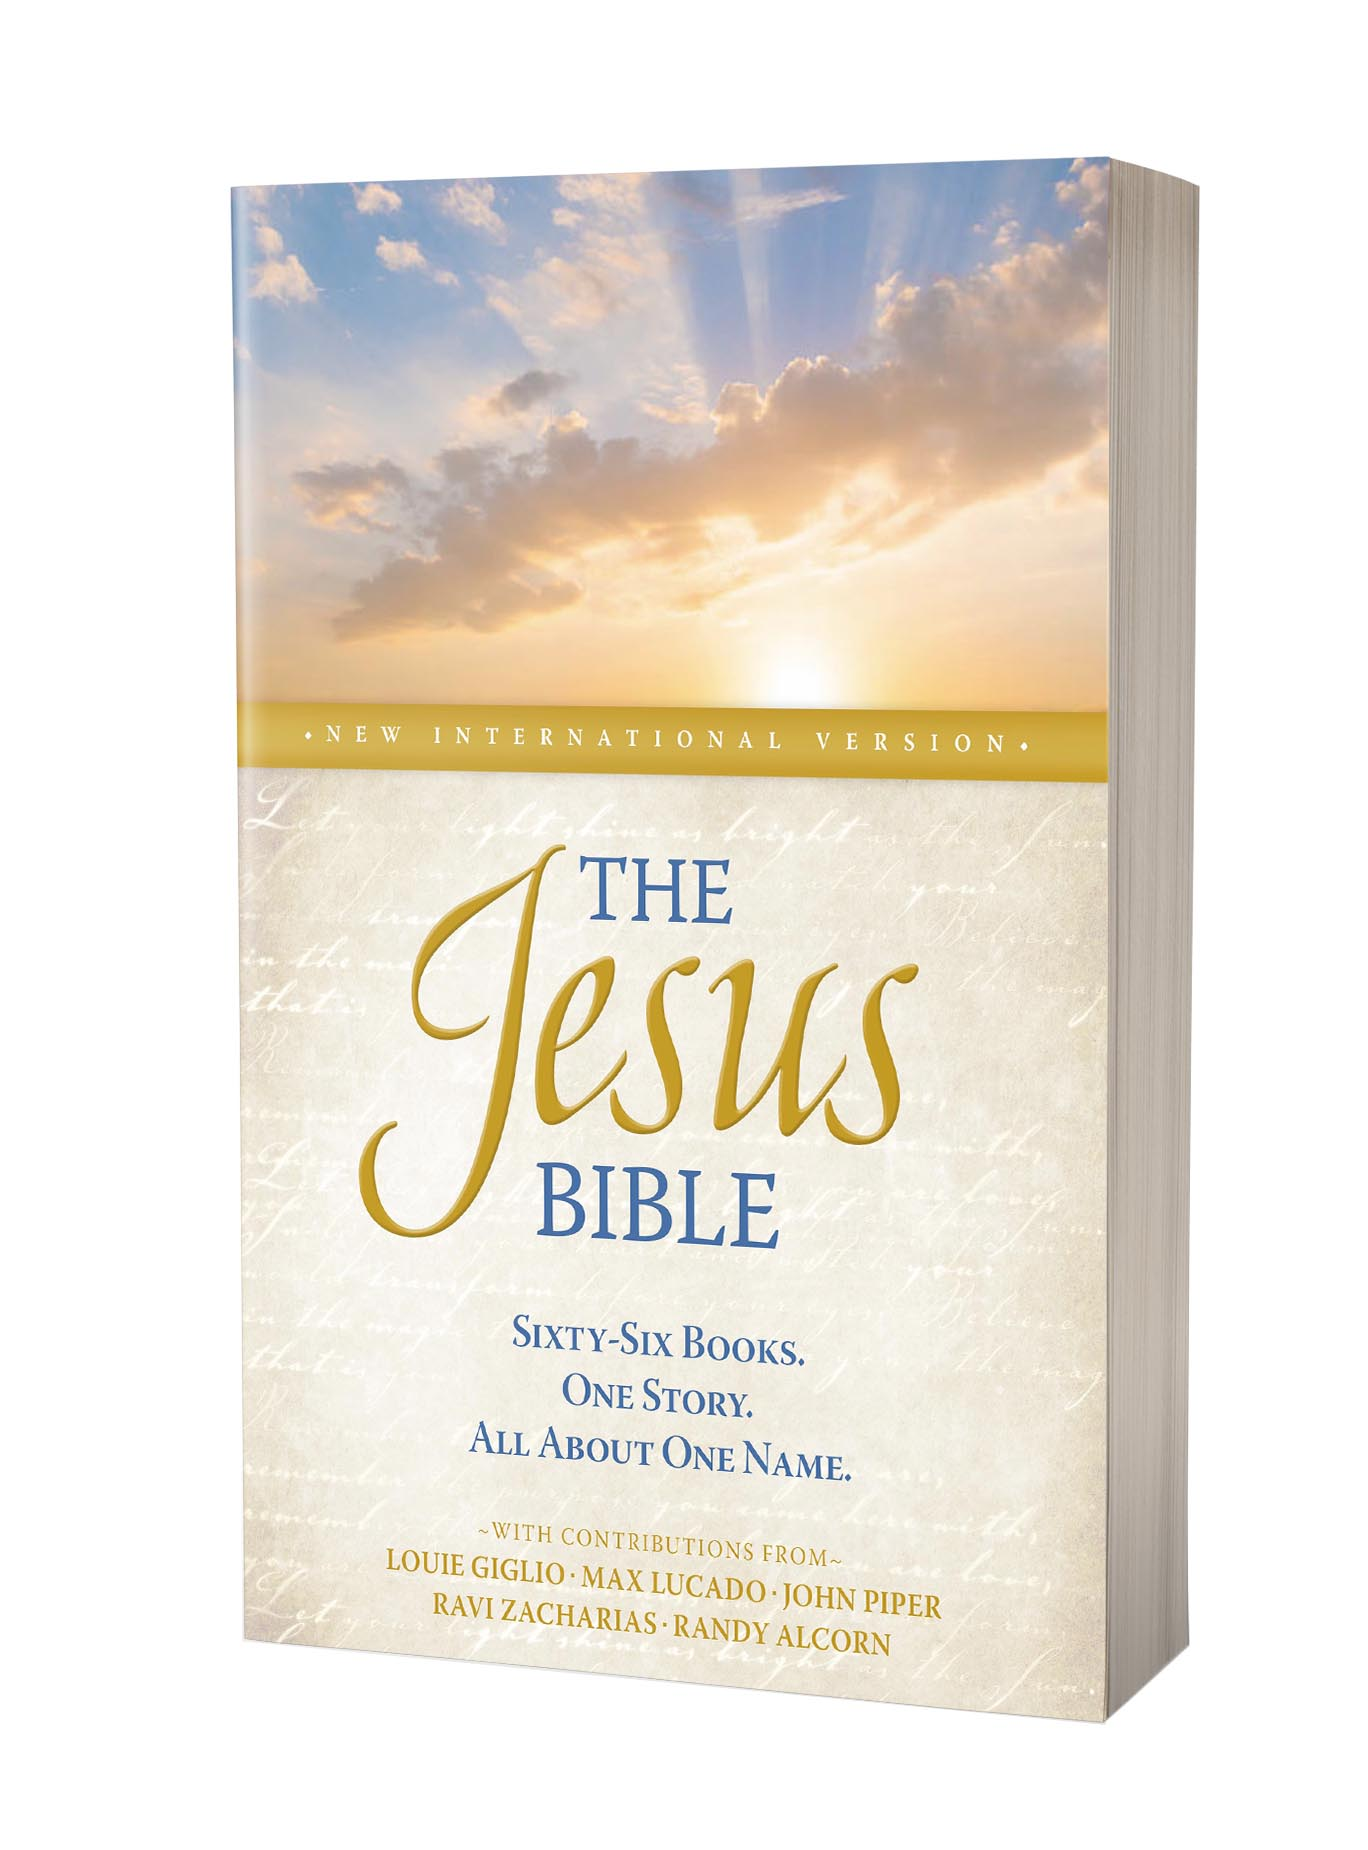 The Jesus Bible